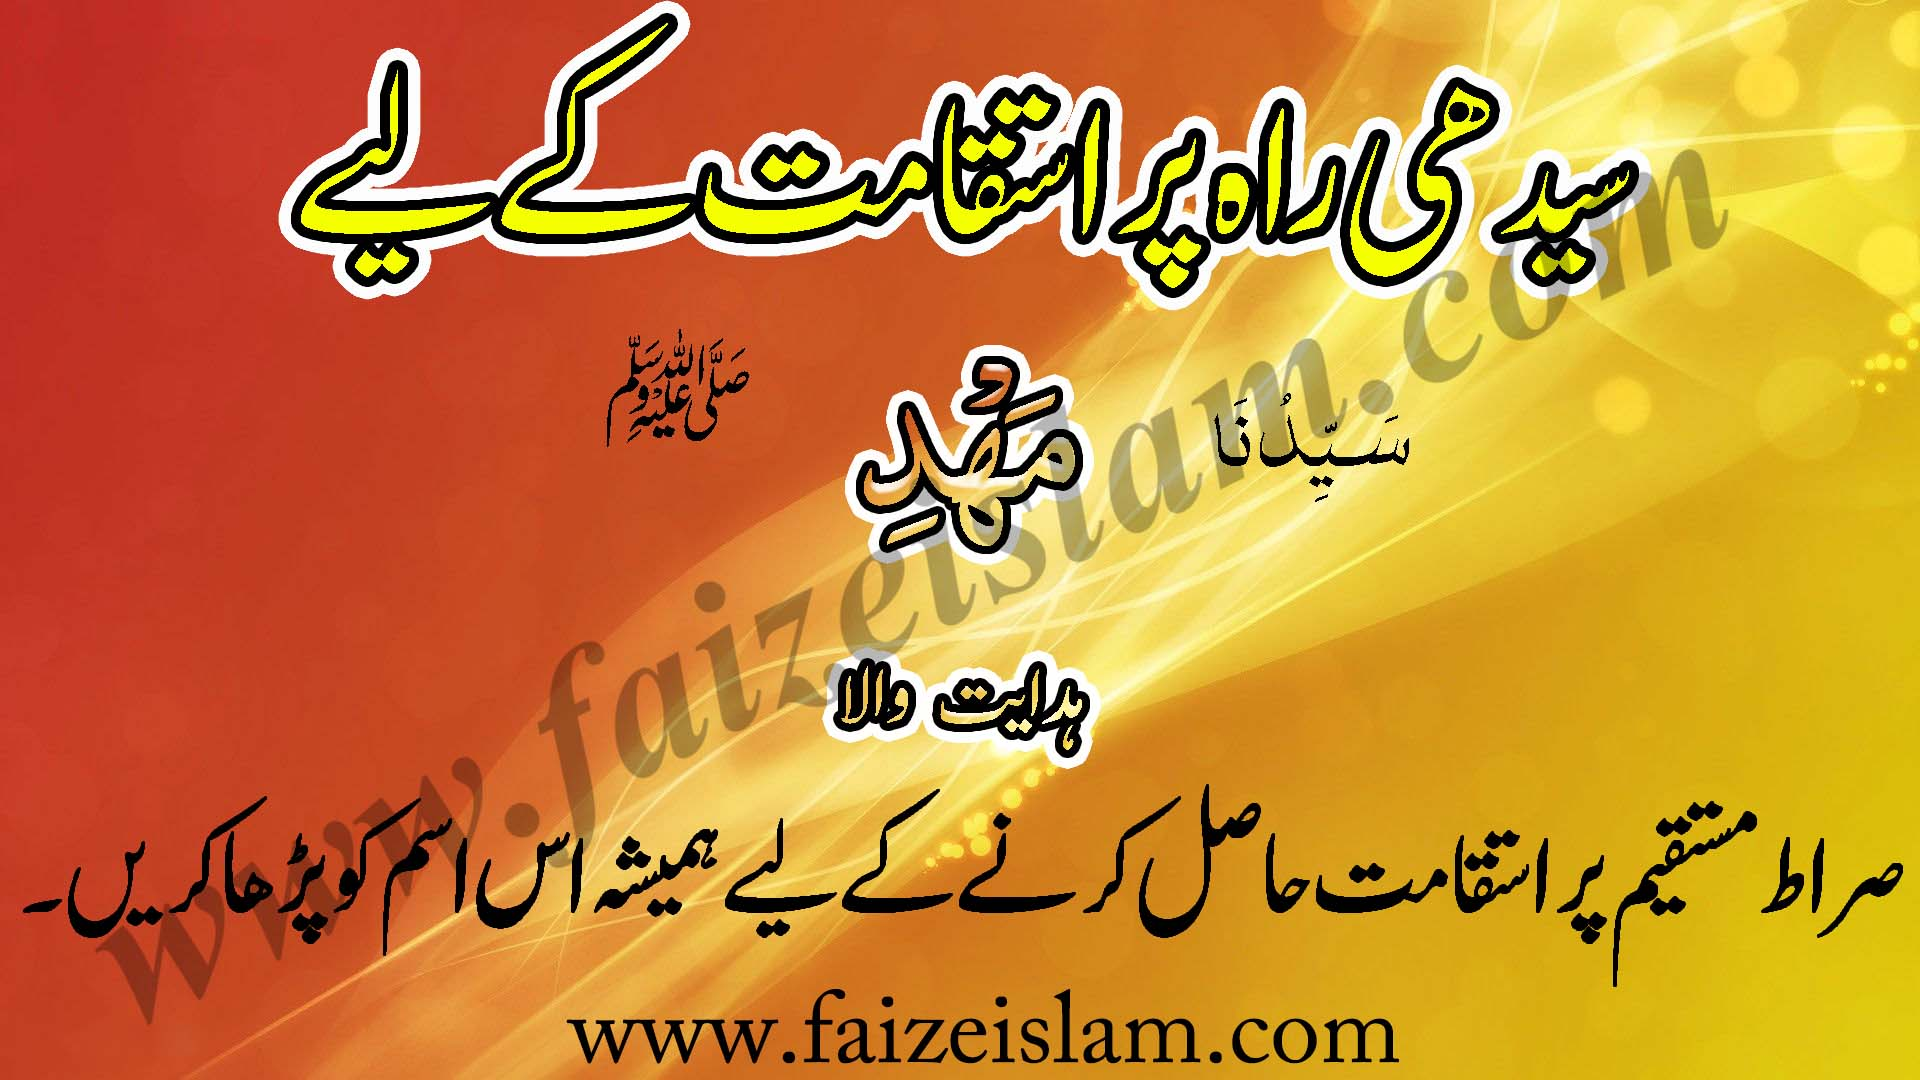 Photo of Seedhi Rah Par Istiqamat Kay Liye Wazifa In Urdu